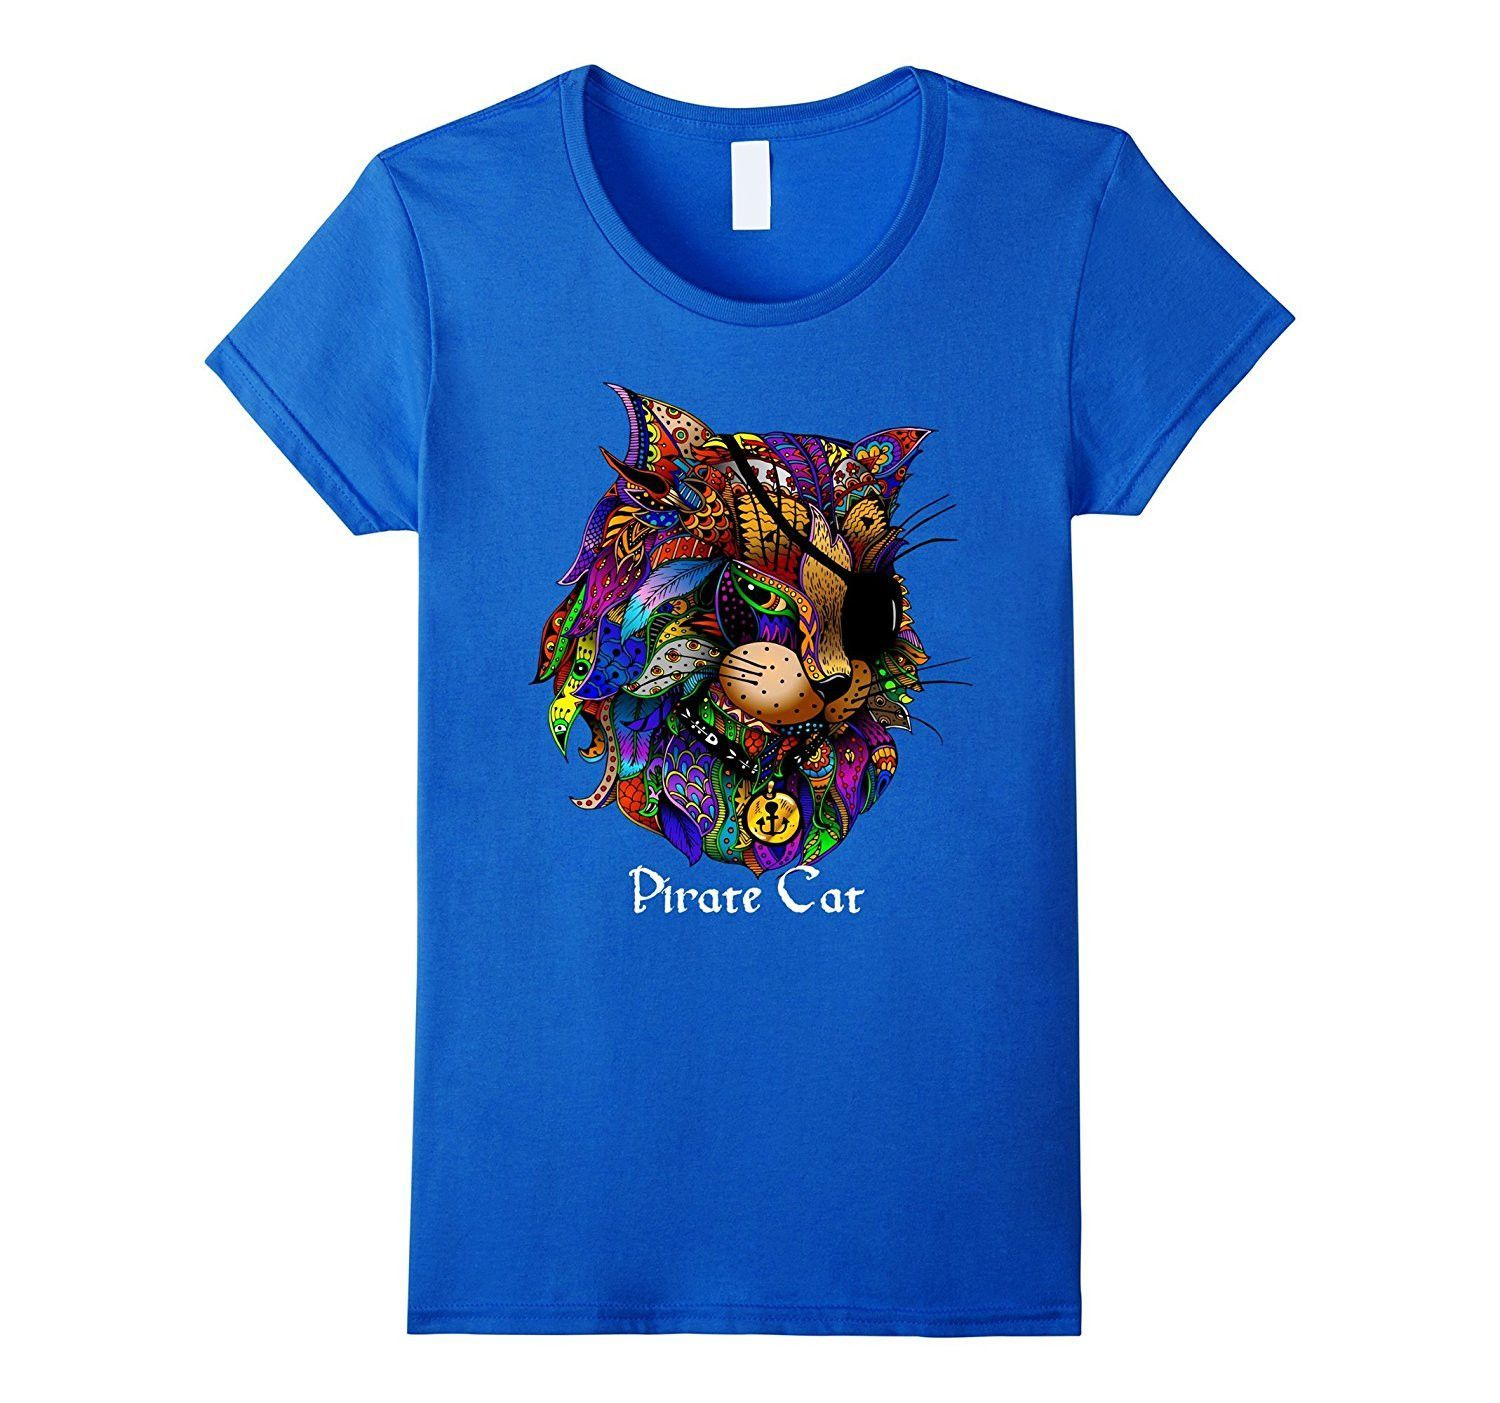 Cool Rainbow Pirate Cat Shirt